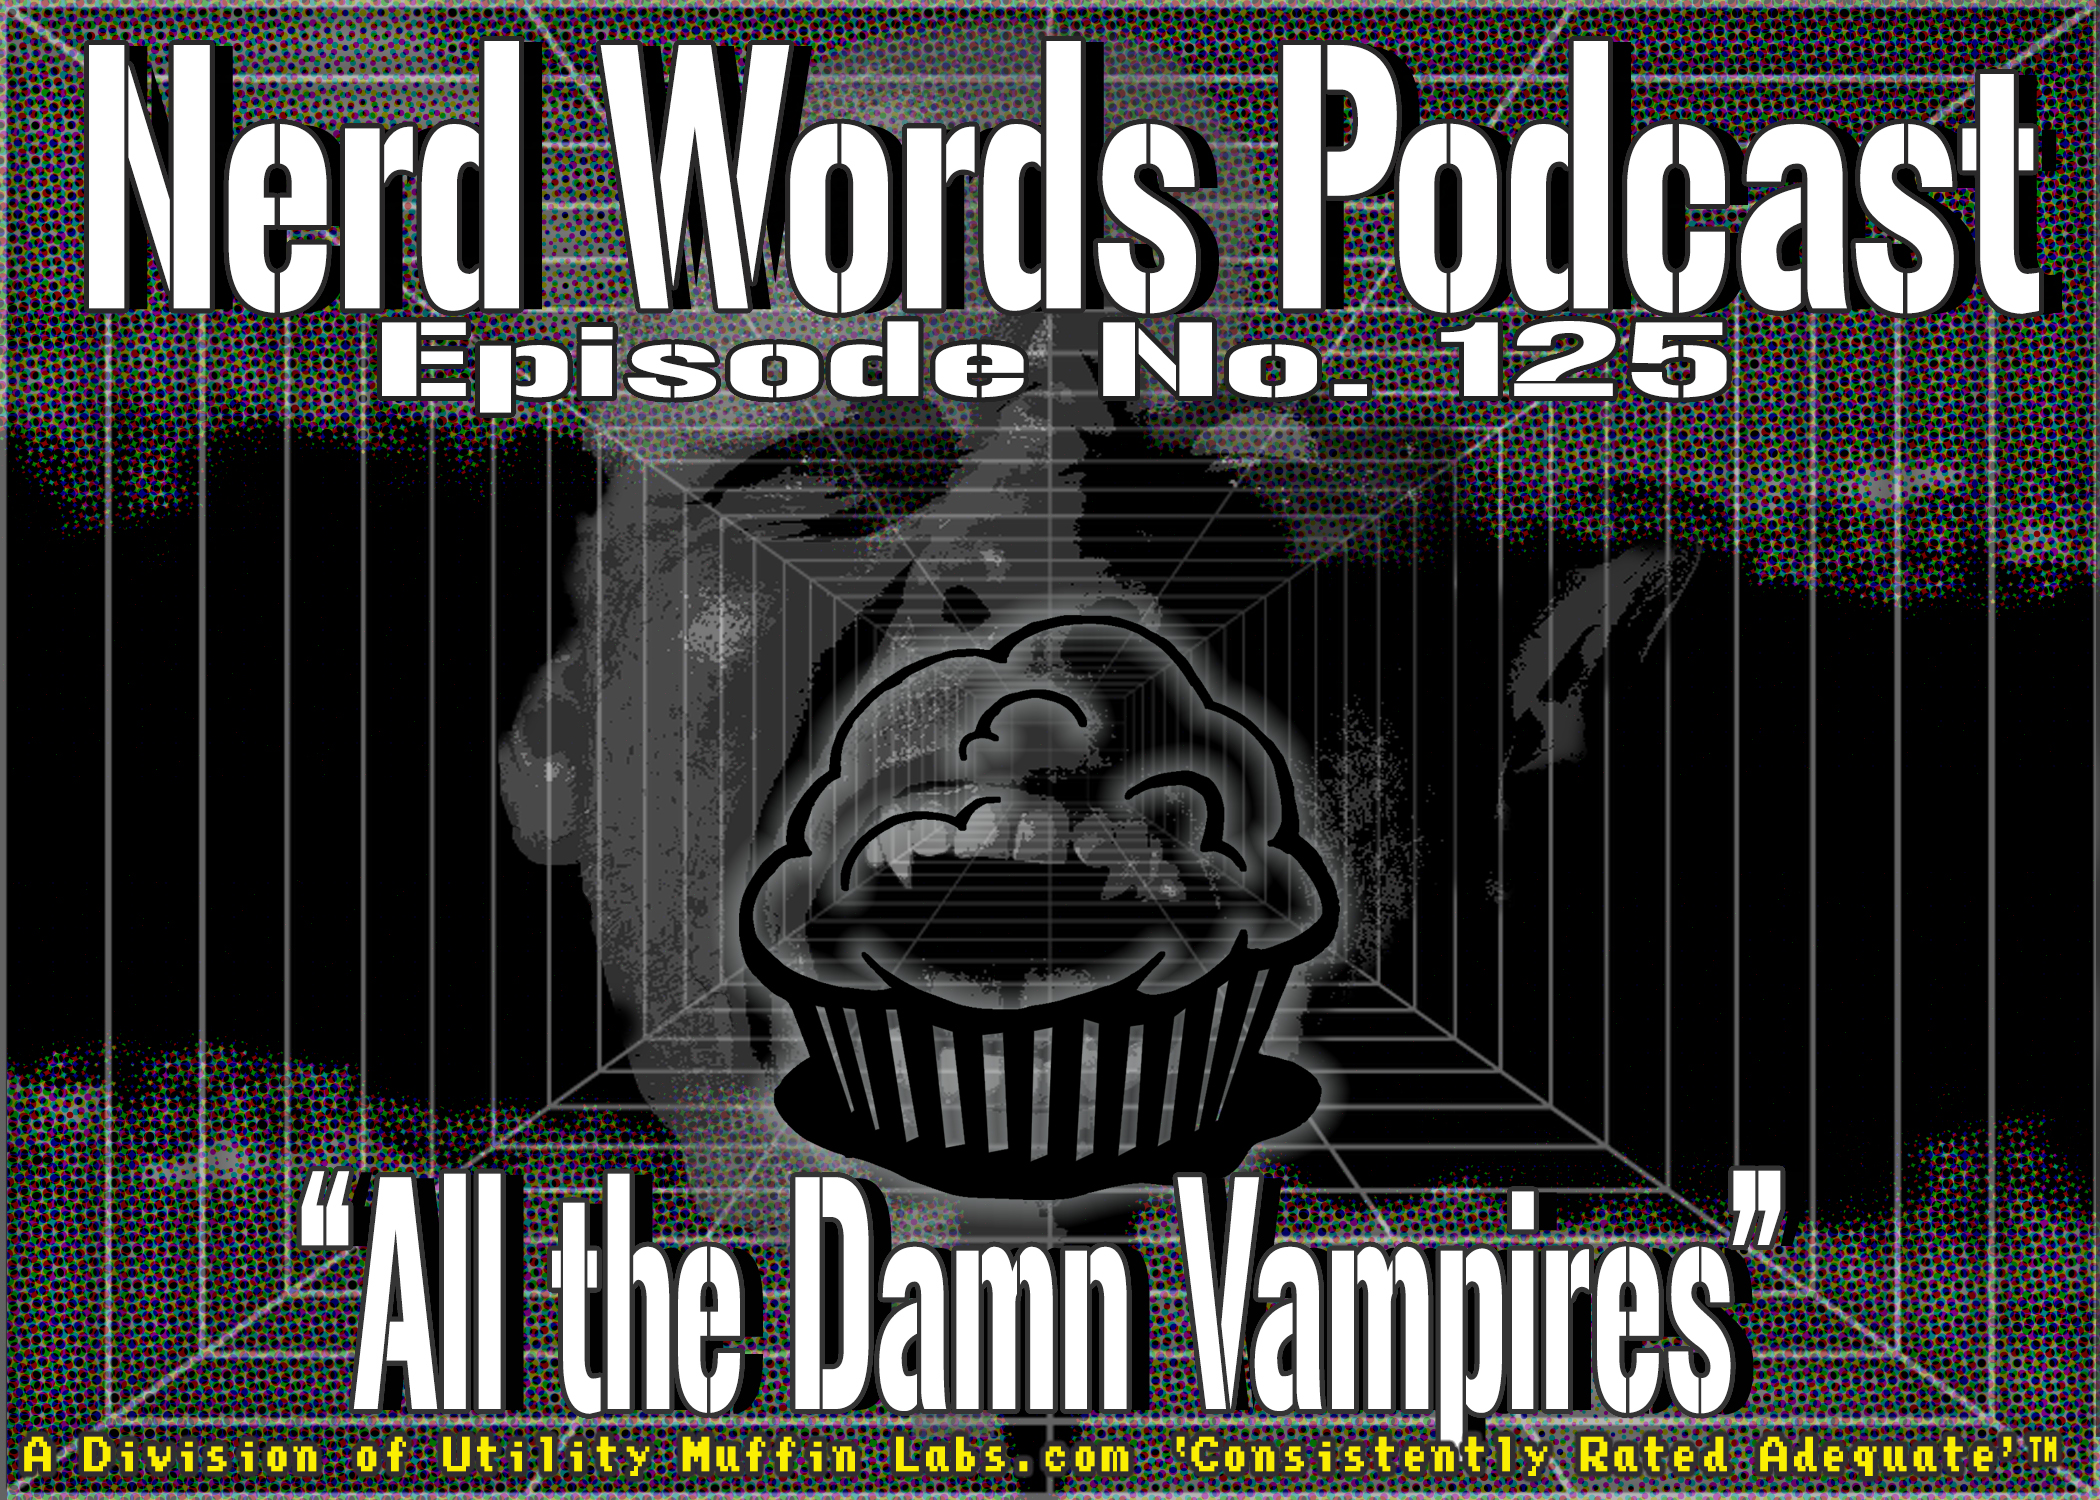 Nerd Words Podcast Aug 22.jpg